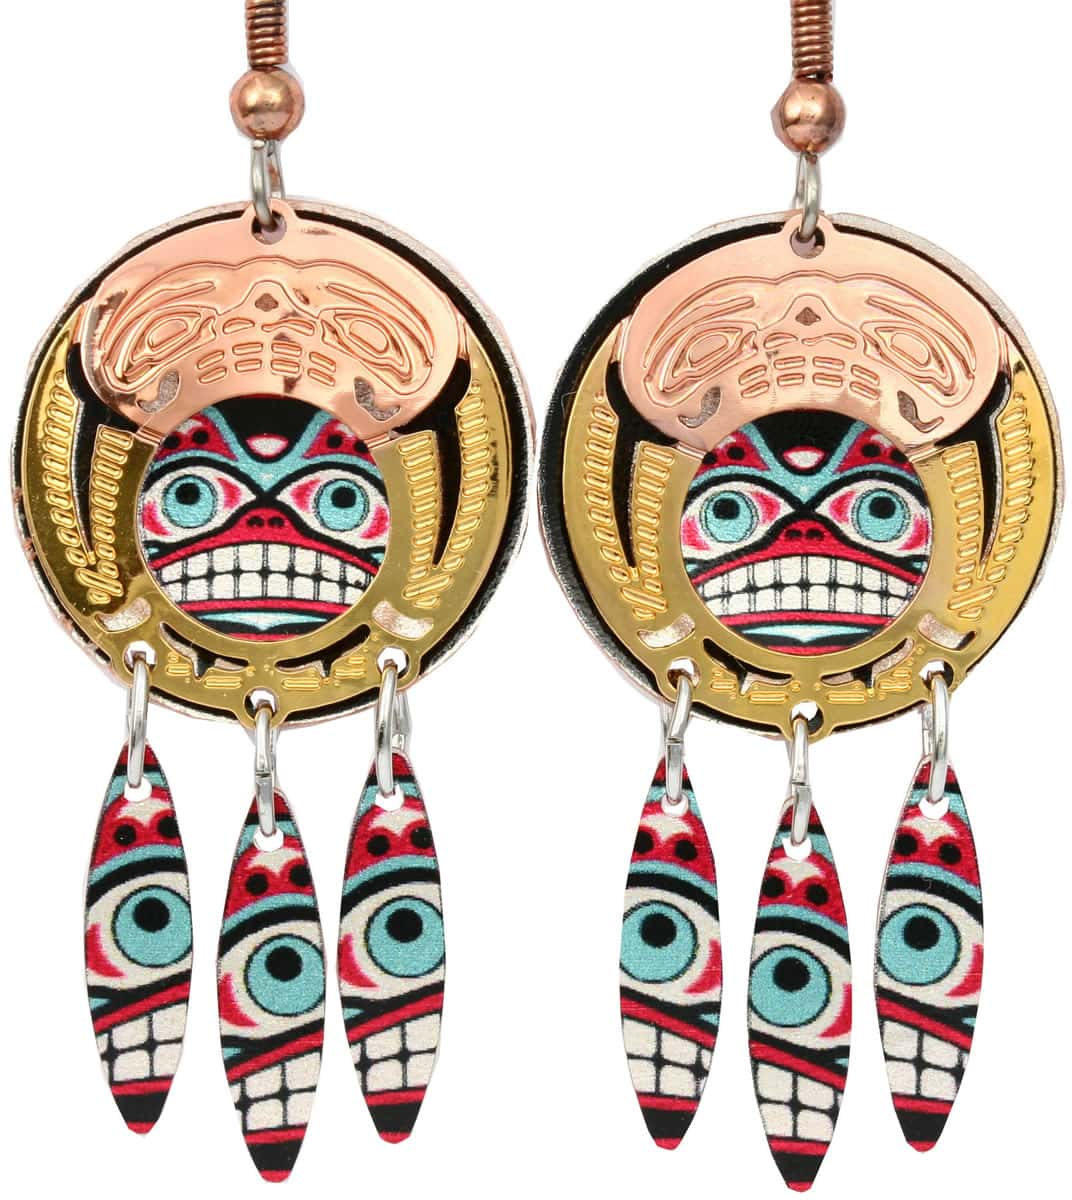 Northwest Native Haida totemic earrings with colorful background